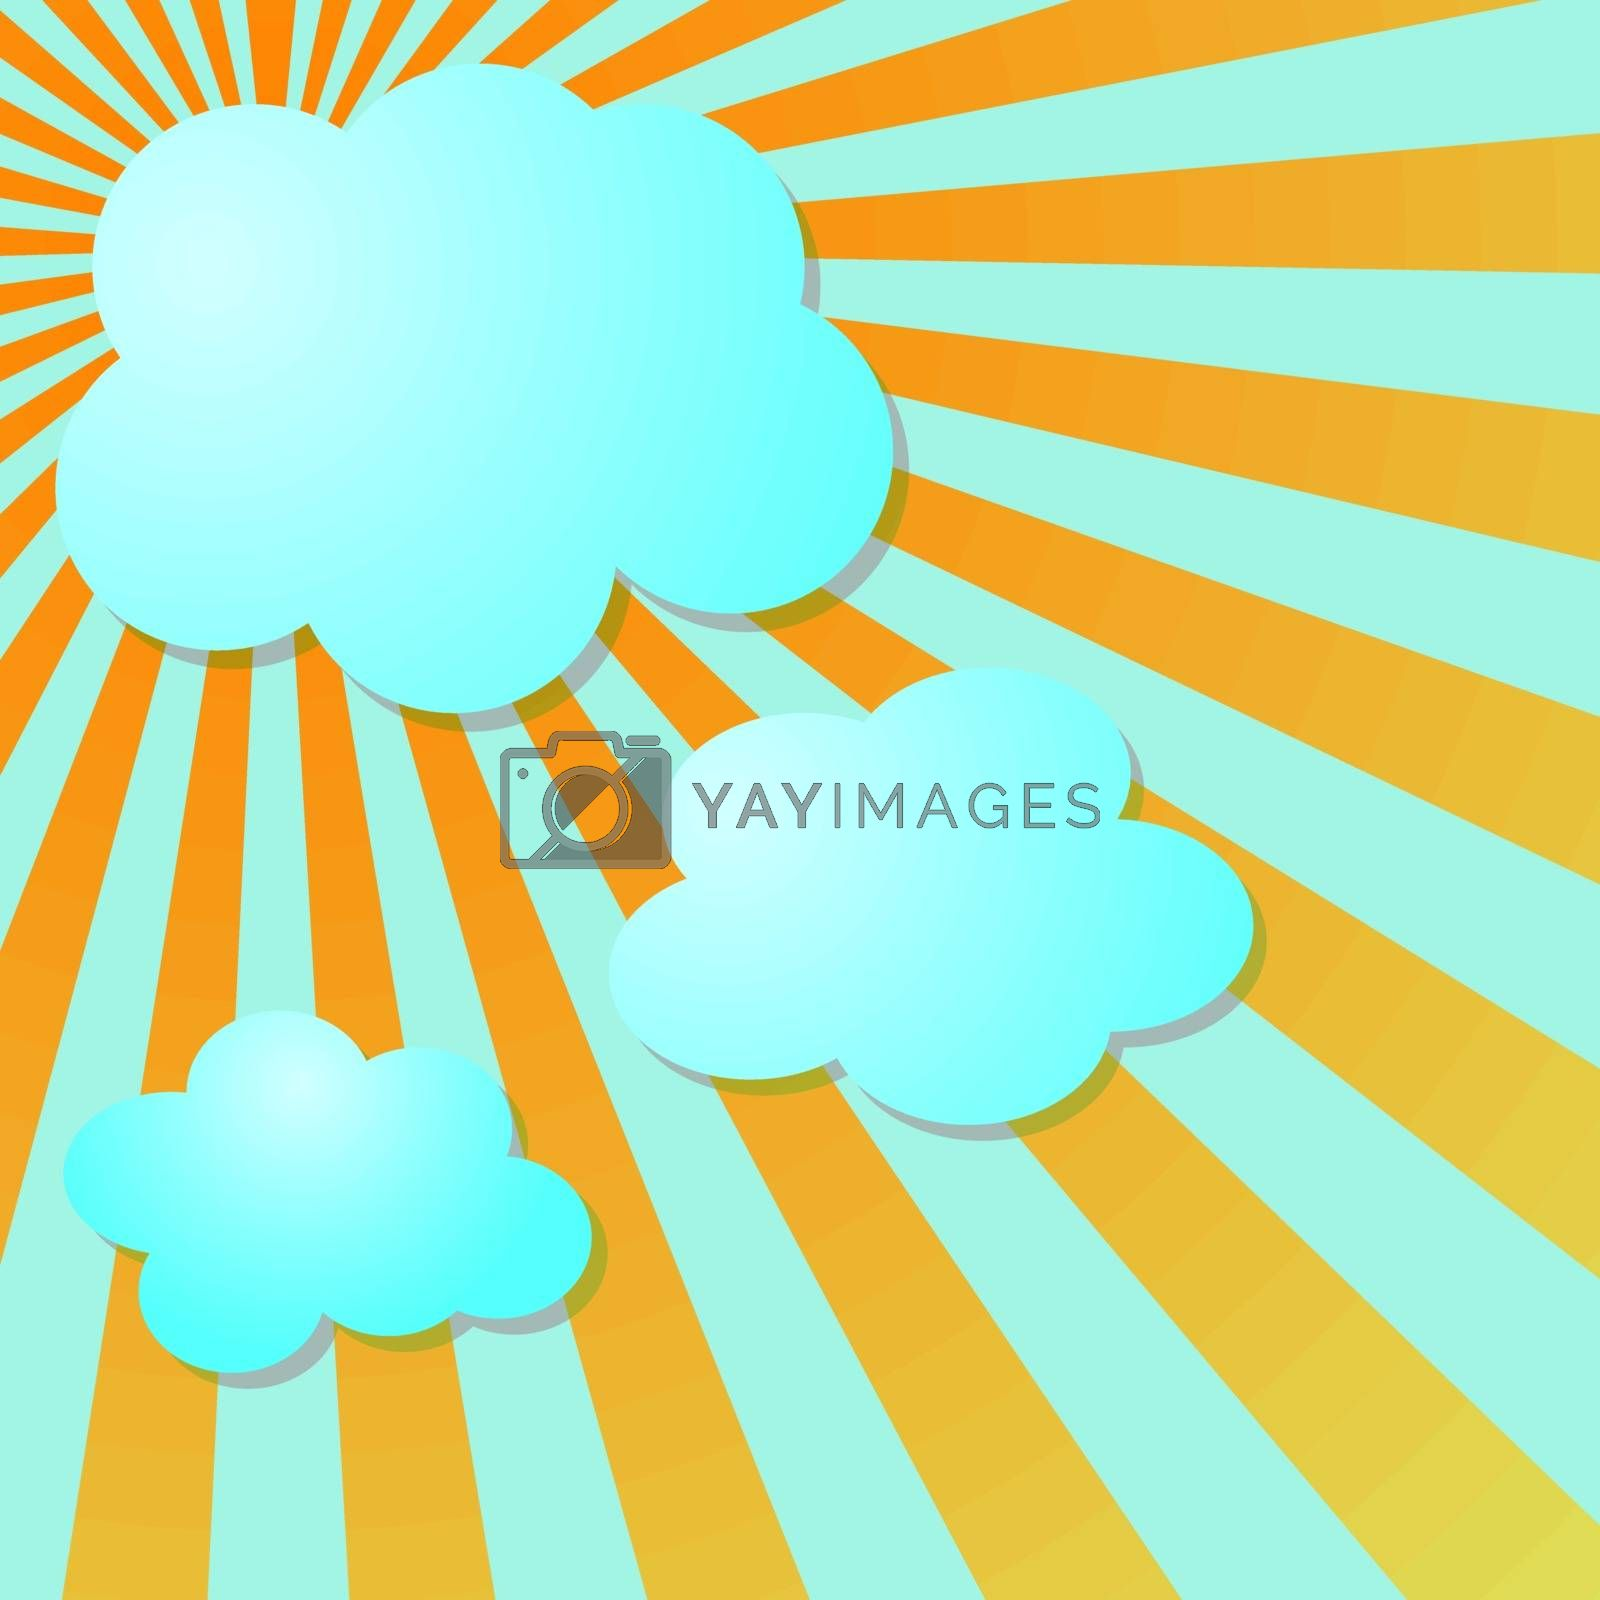 Summer blus sky with sun radial rays and clouds, vector illustration